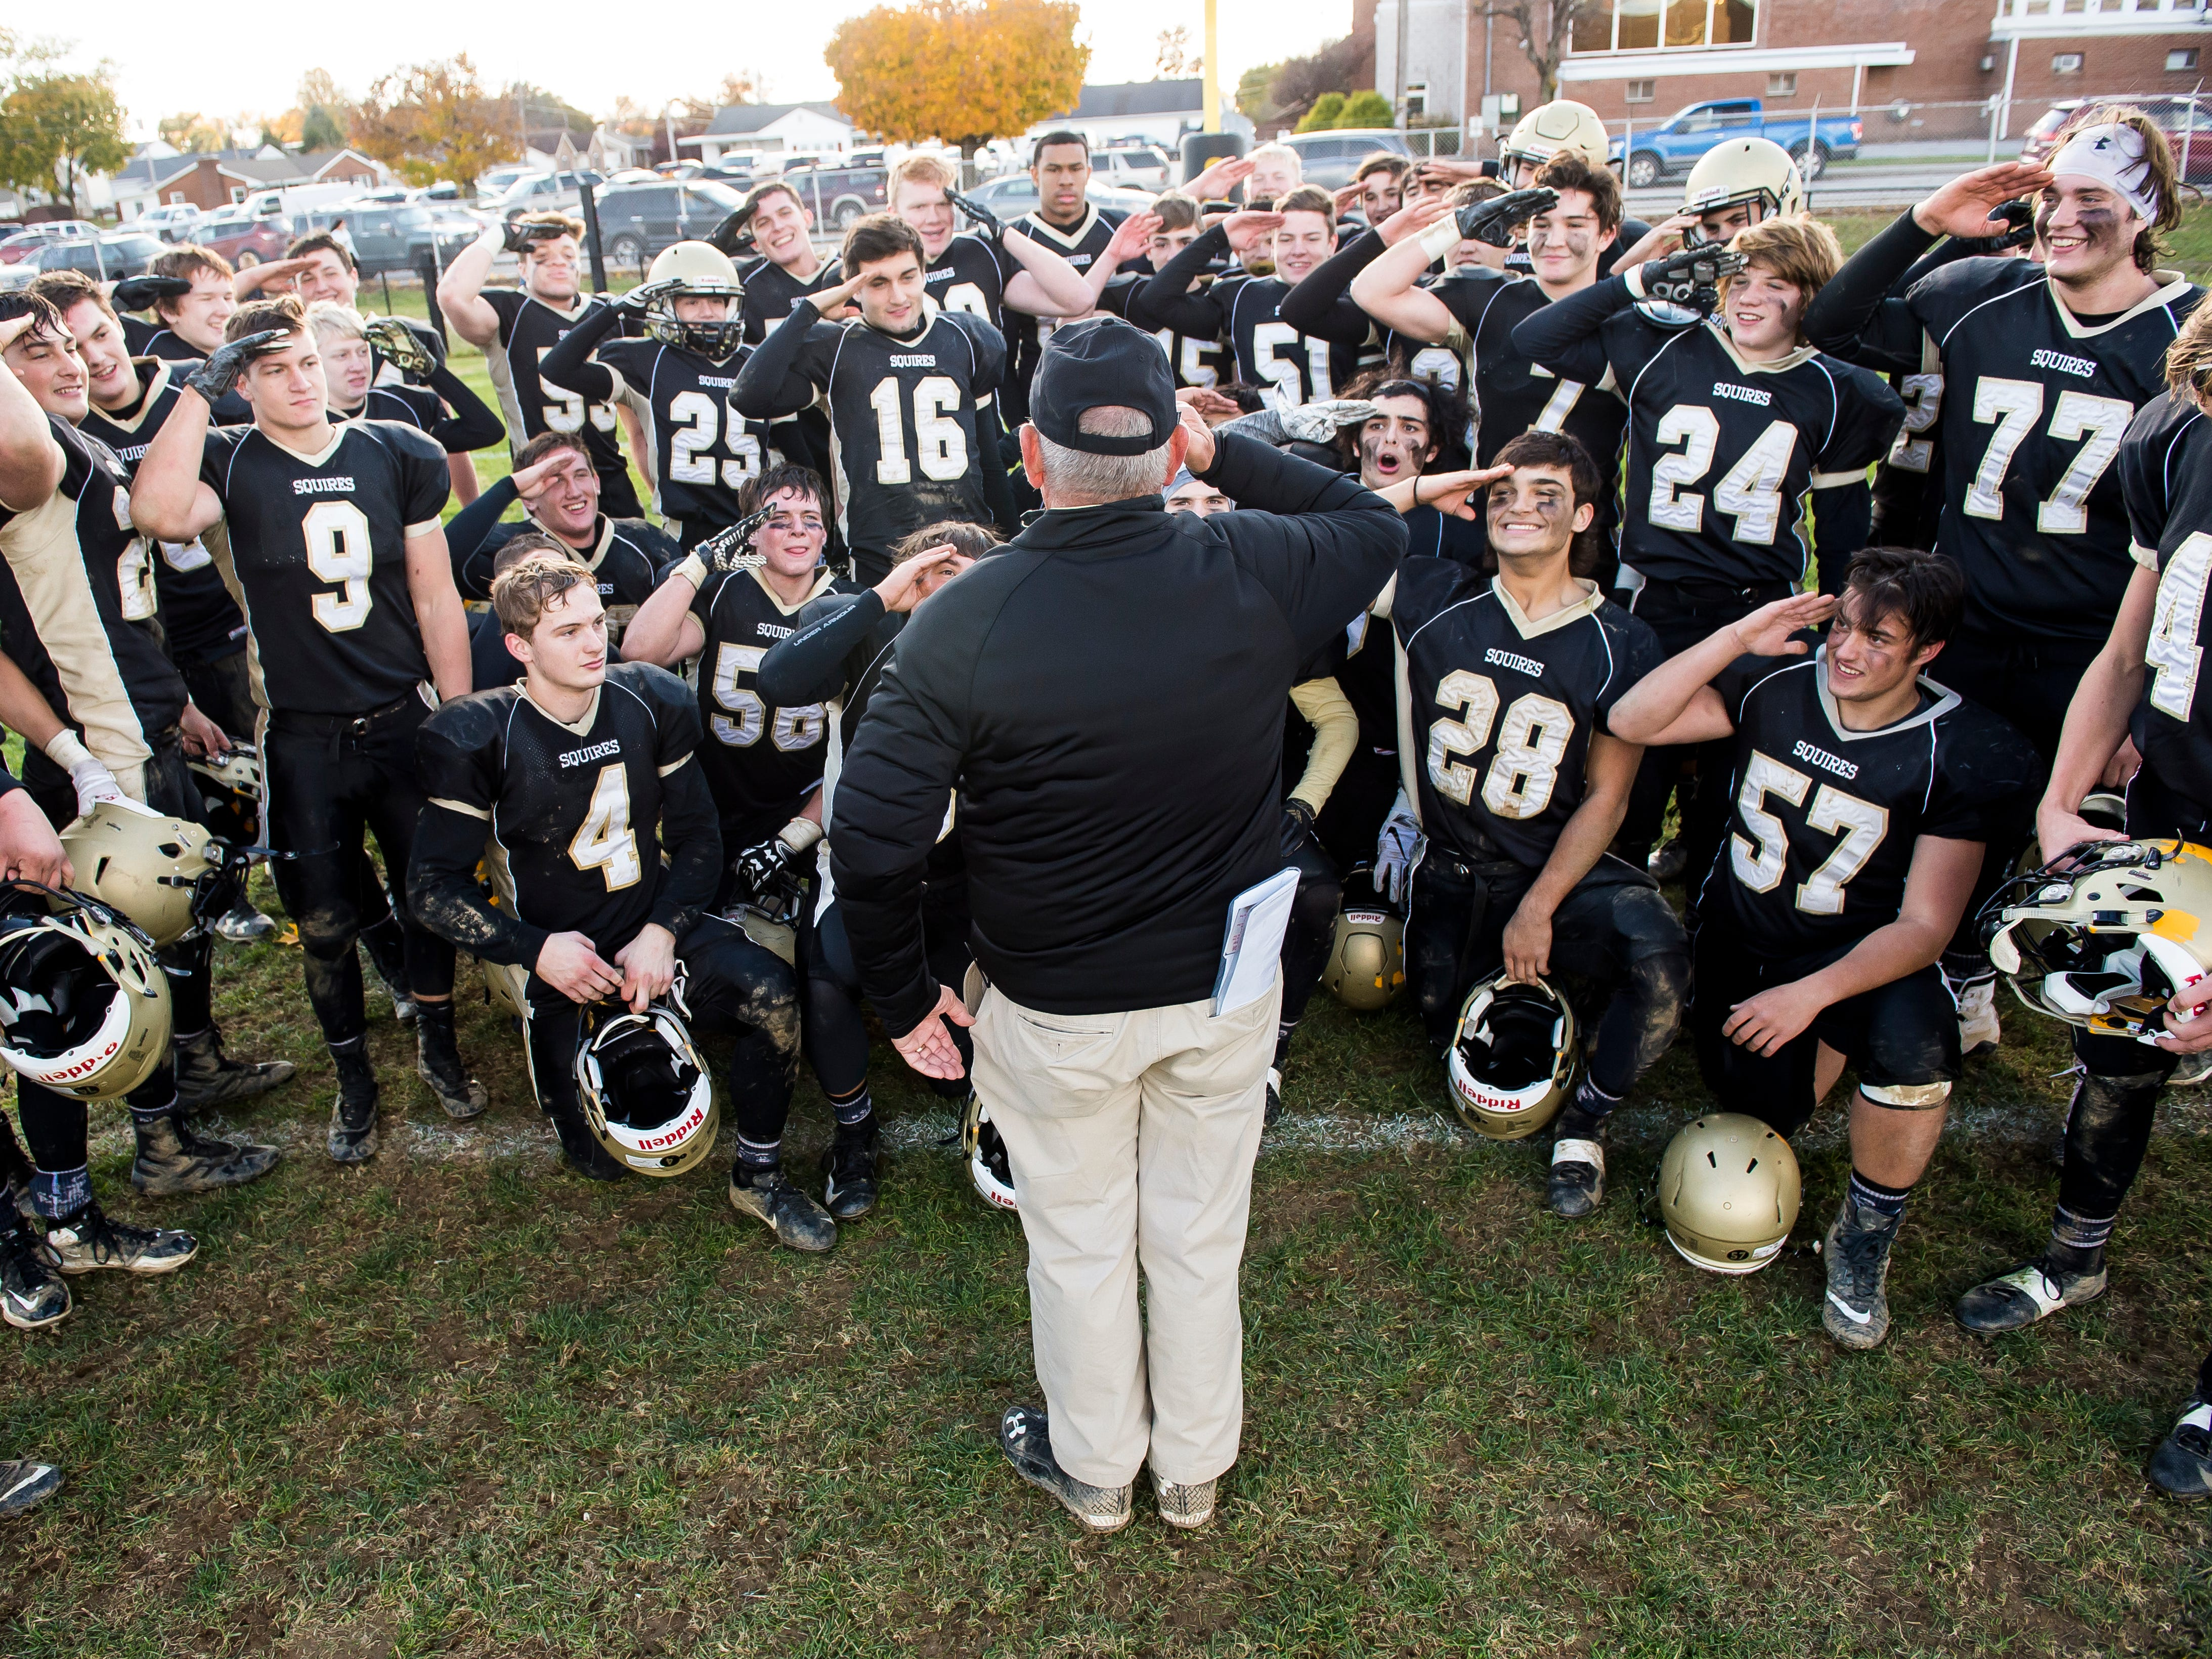 Delone Catholic players salute one of their coaches after defeating Upper Dauphin 48-23 in a District III Class 2A semifinal game on Saturday, November 3, 2018. The Squires will play in the District title game against York Catholic on Friday.